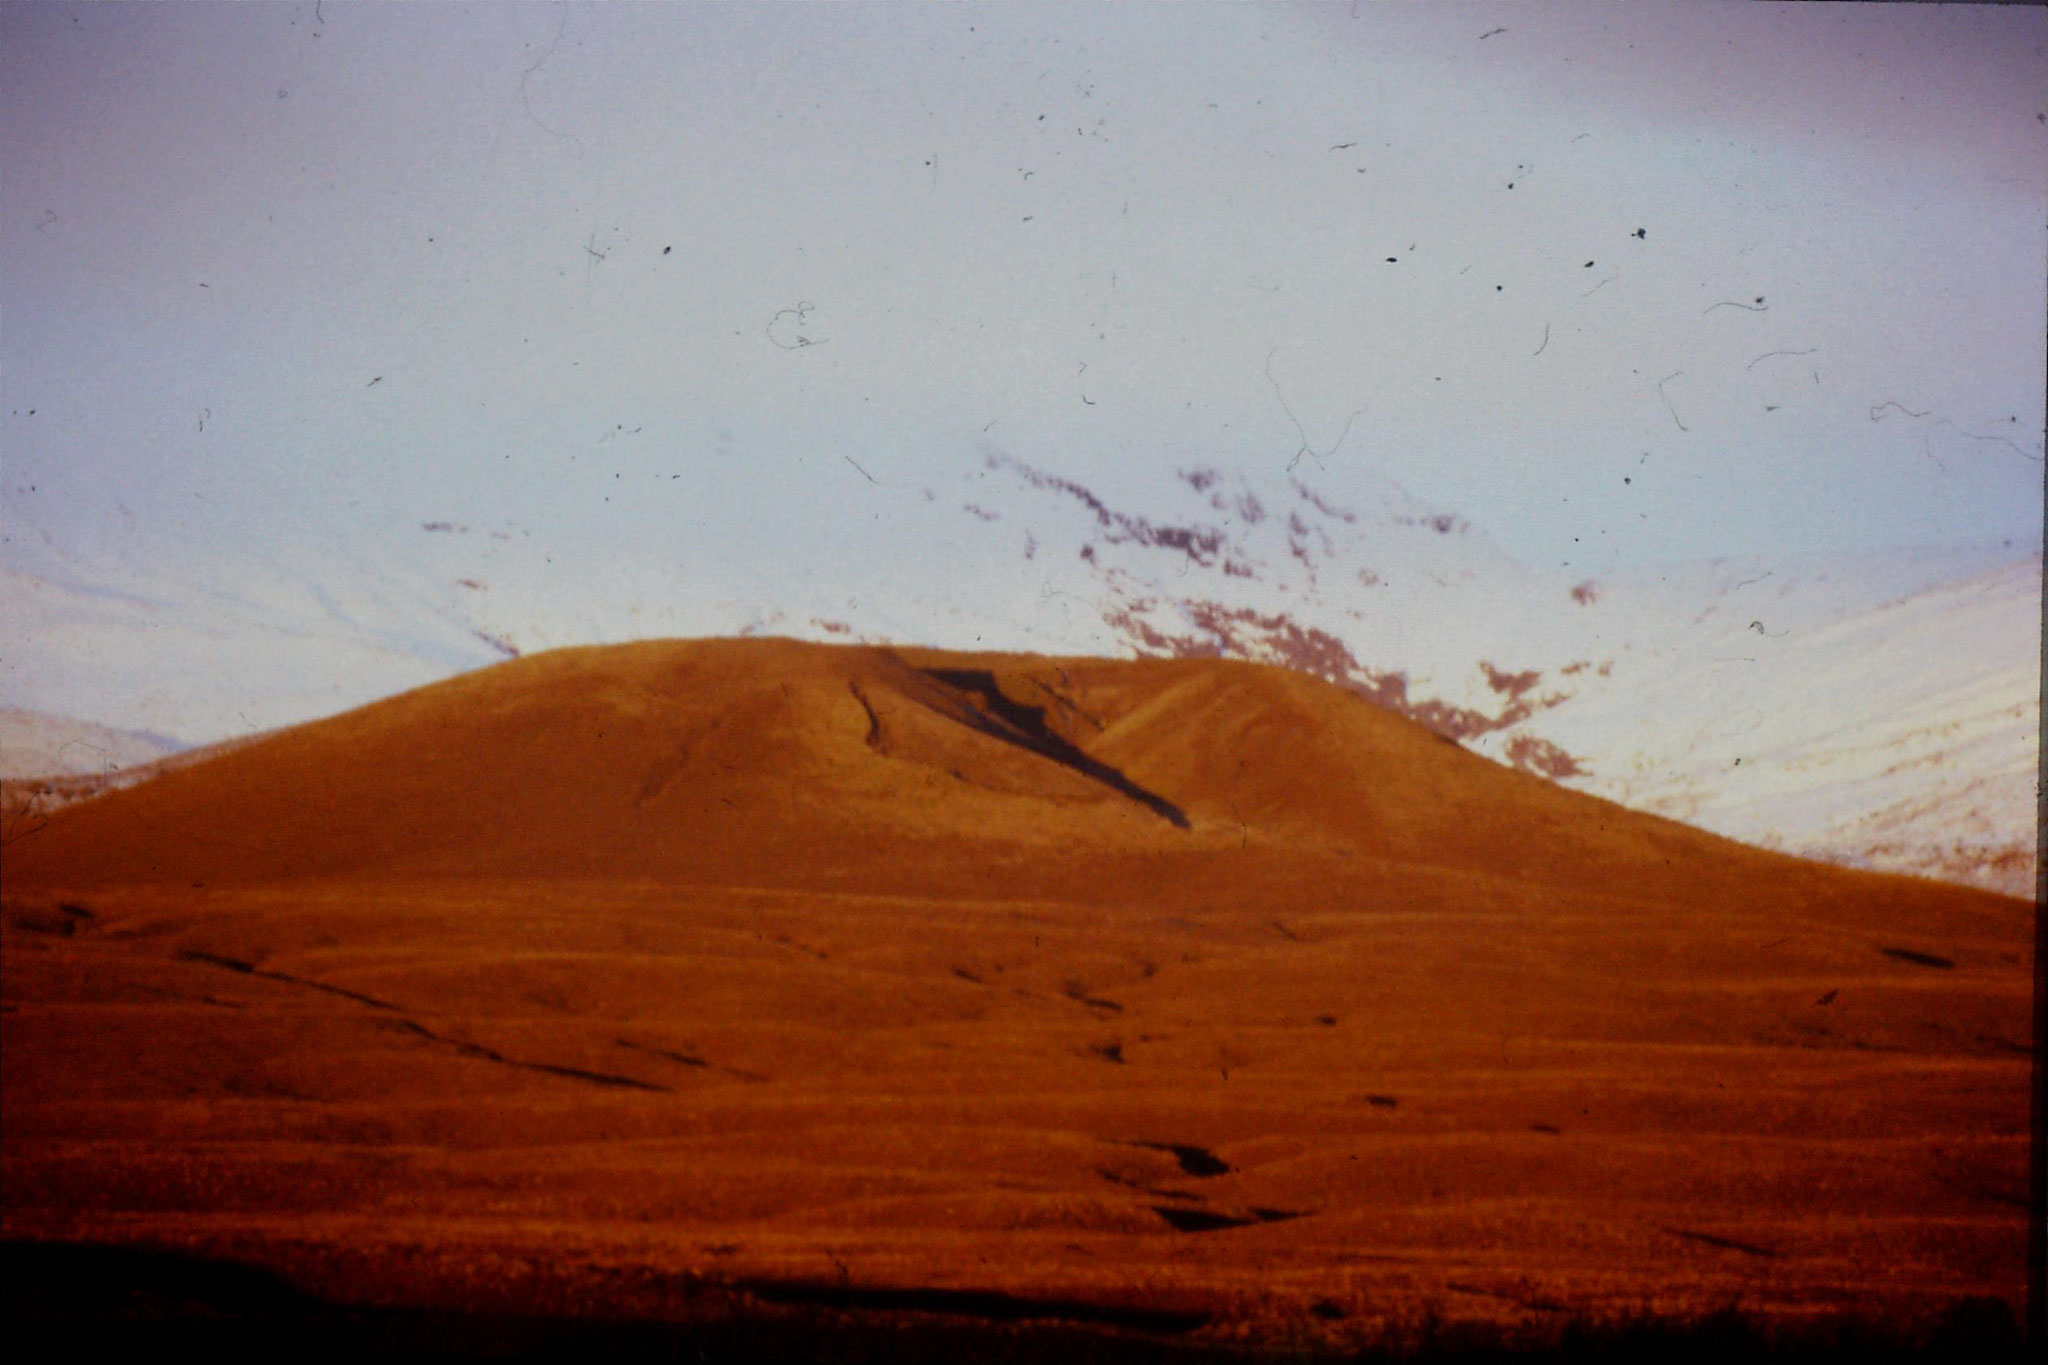 29/8/1990: 6: sunset on Mt Ngauruhoe